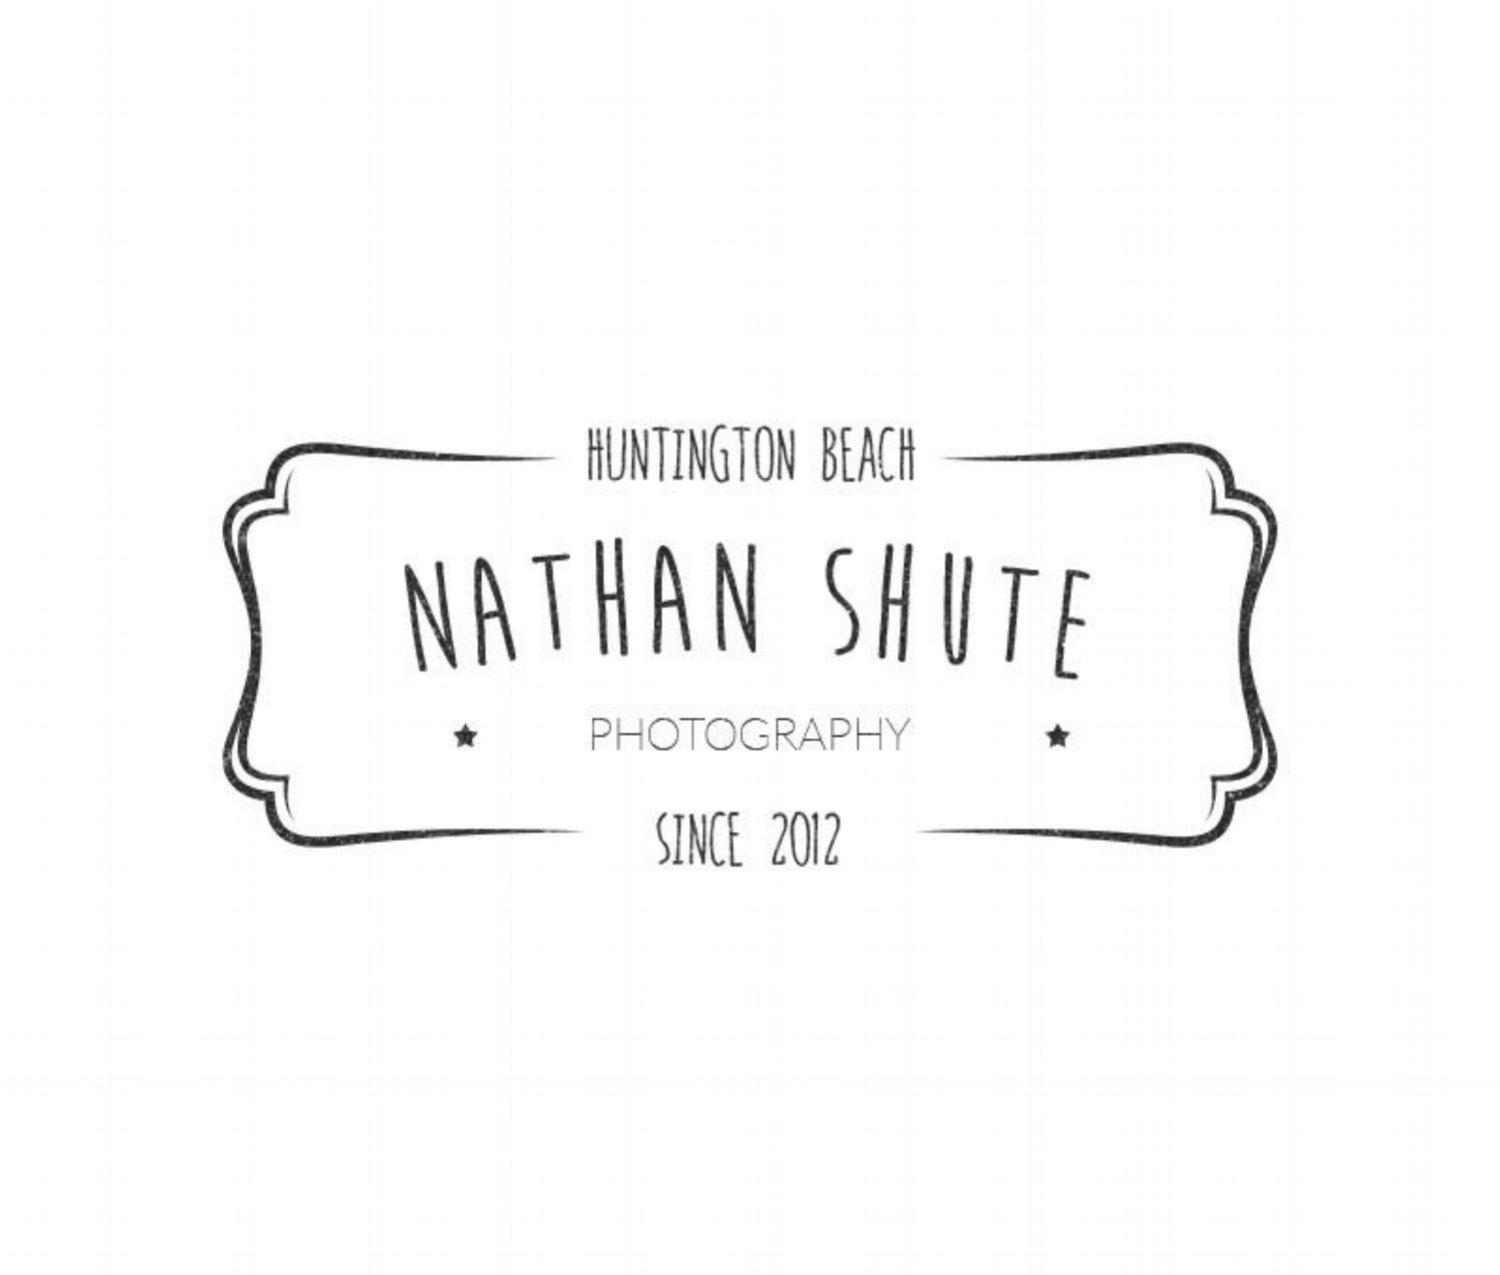 Nathan Shute Photography